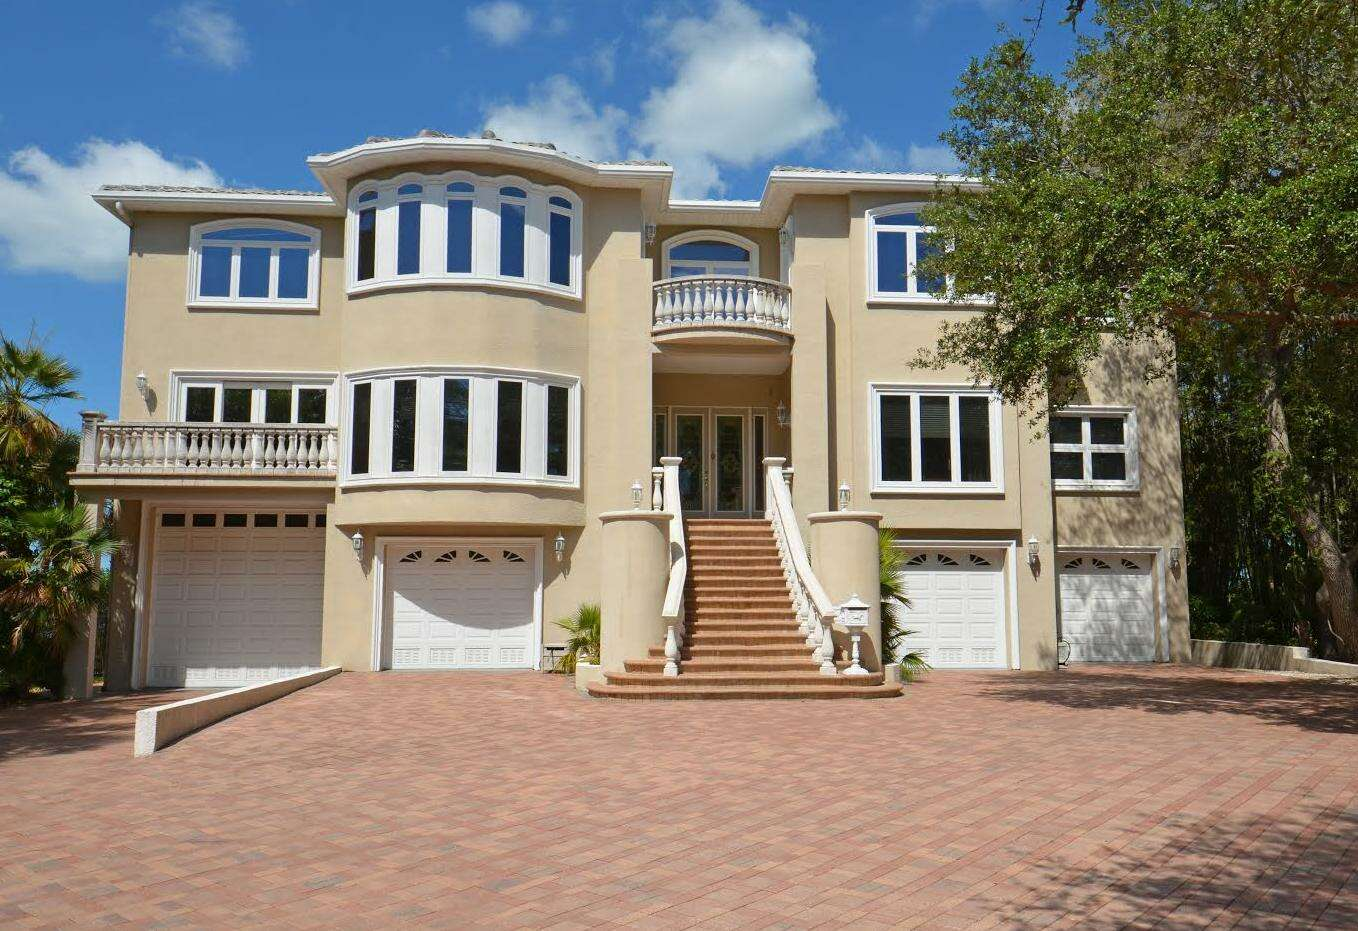 Single Family for Sale at 1800 Park St. N St. Petersburg, Florida 33710 United States